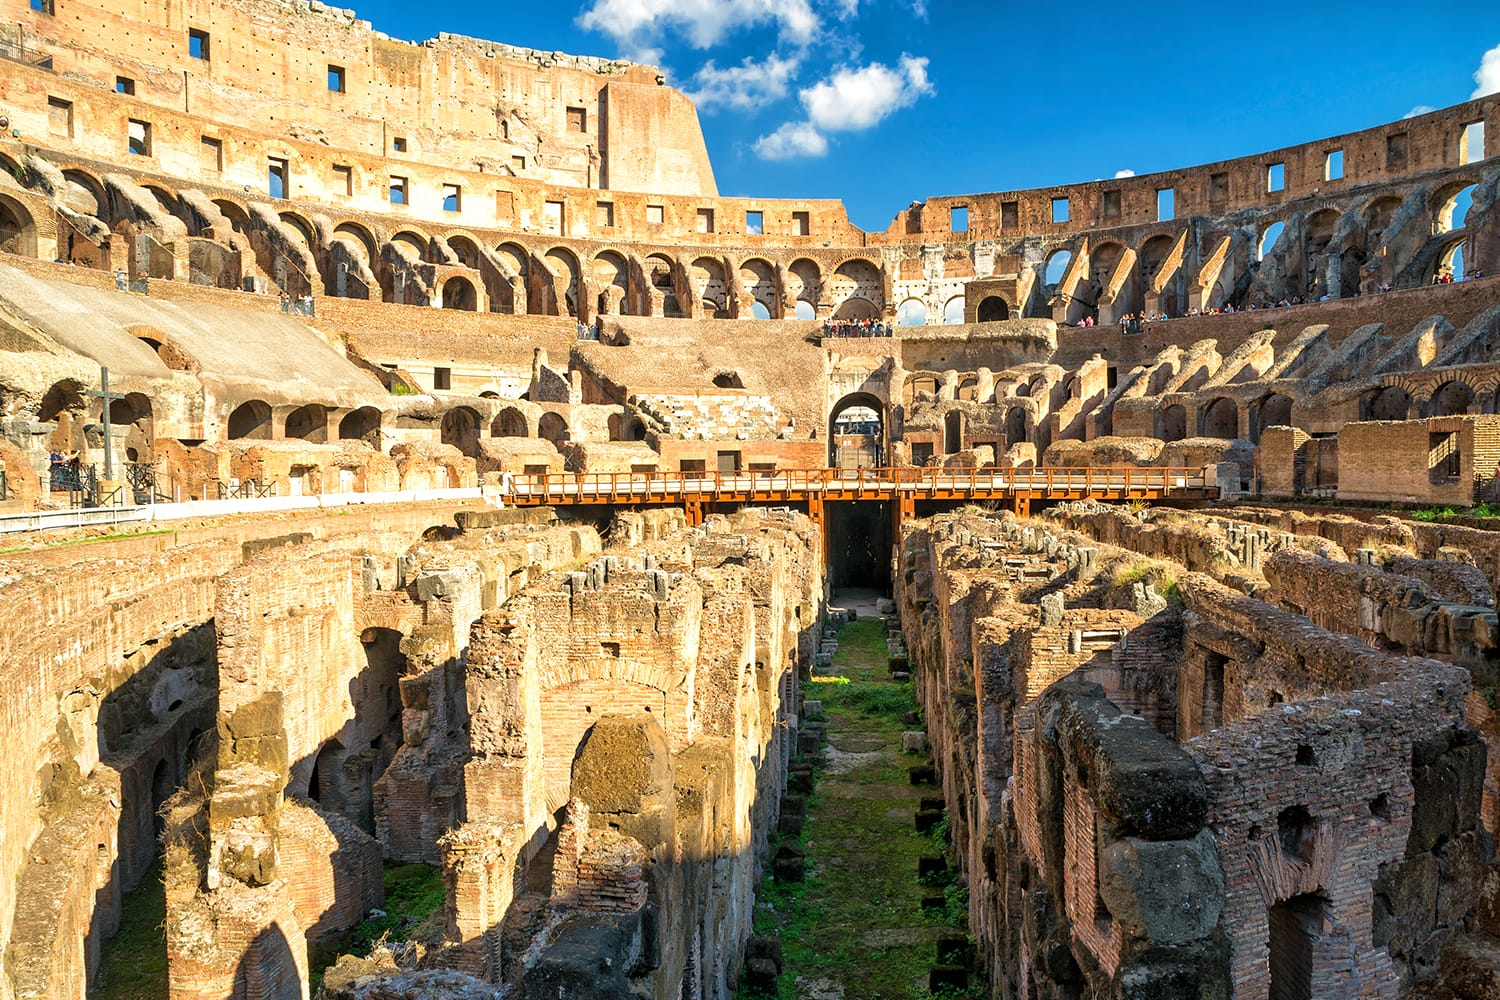 Famous arena of Colosseum (Coliseum) in Rome, Italy.